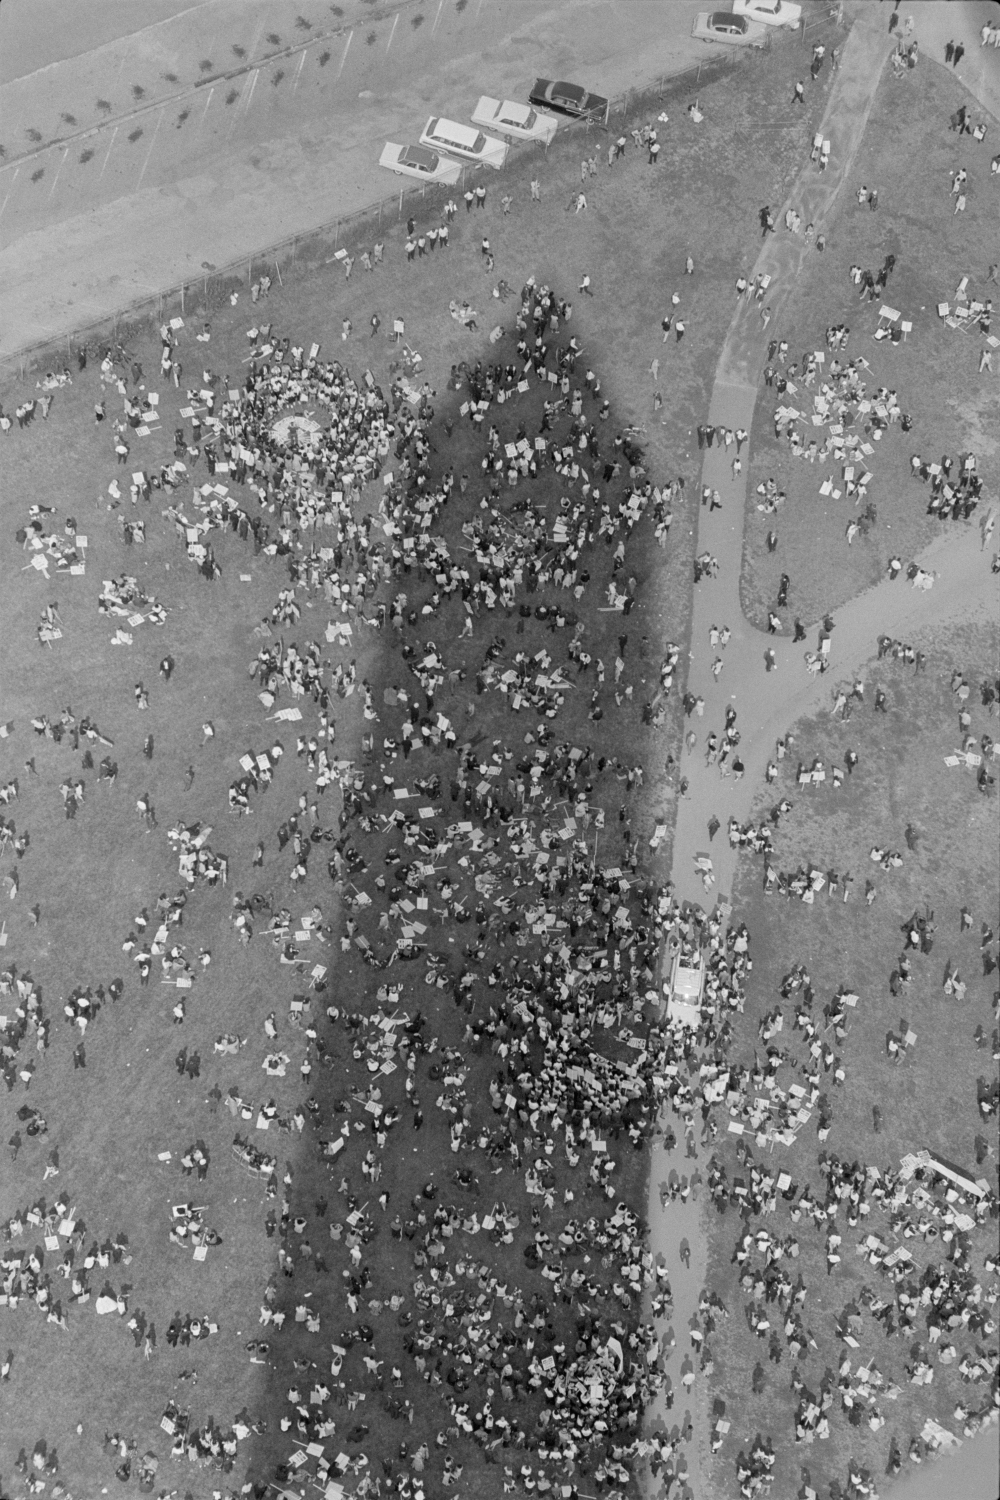 Aerial_view_of_marchers_in_the_shadow_of_the_Washington_Monument.jpg